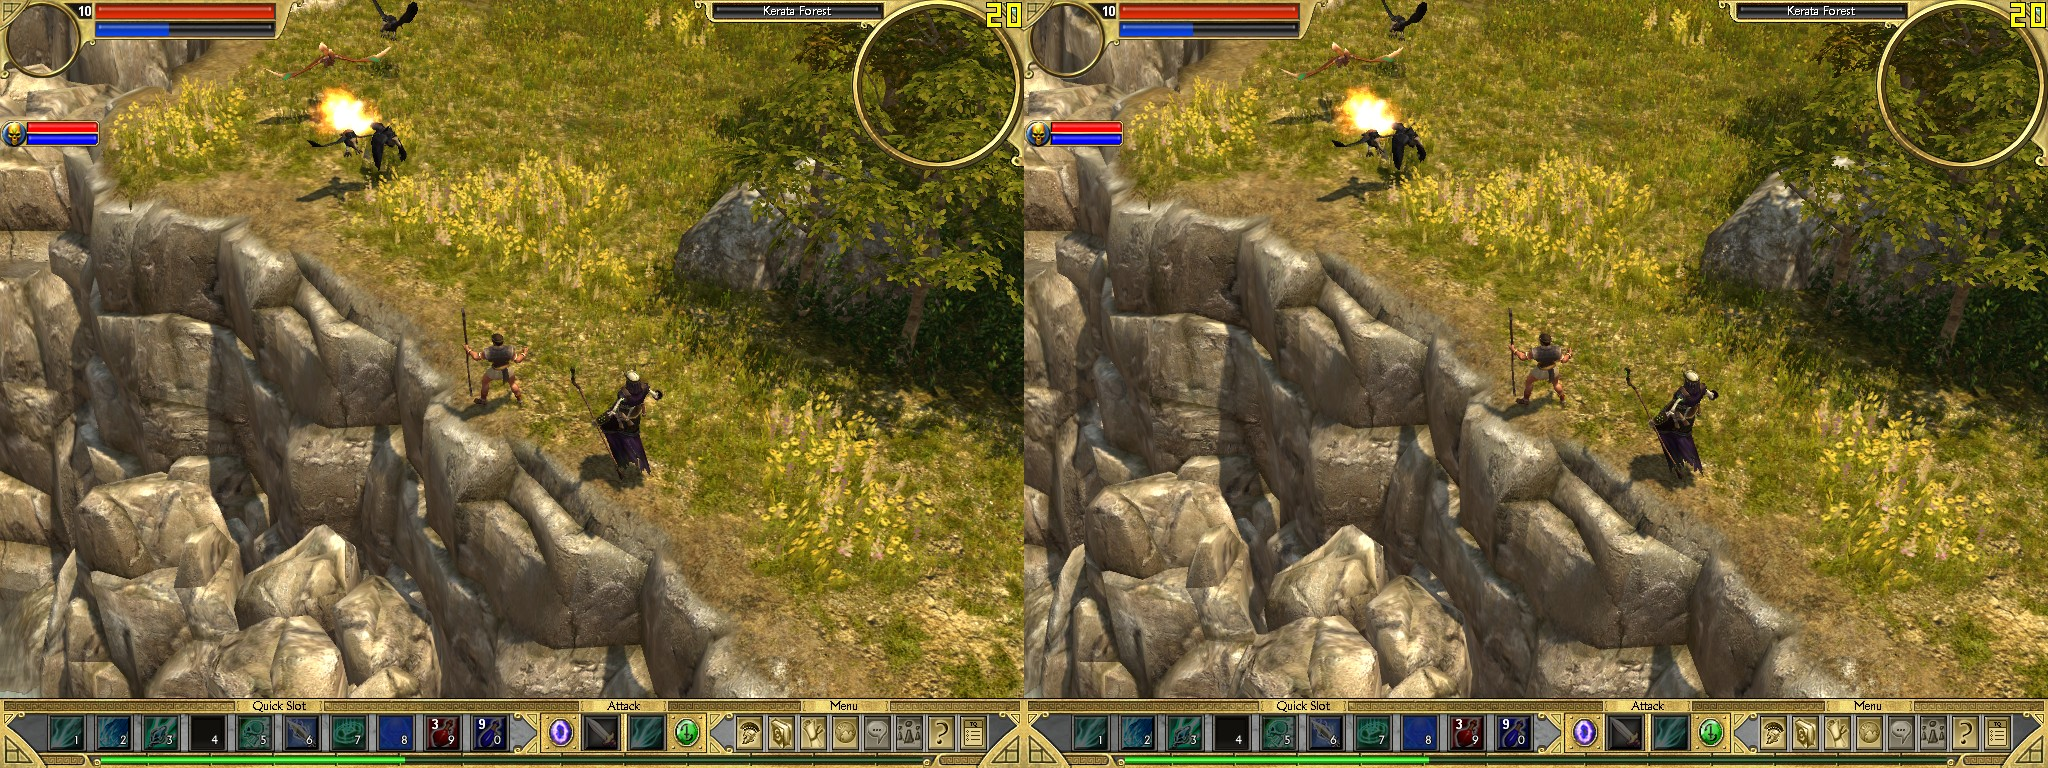 Titan quest frau nud fucks download